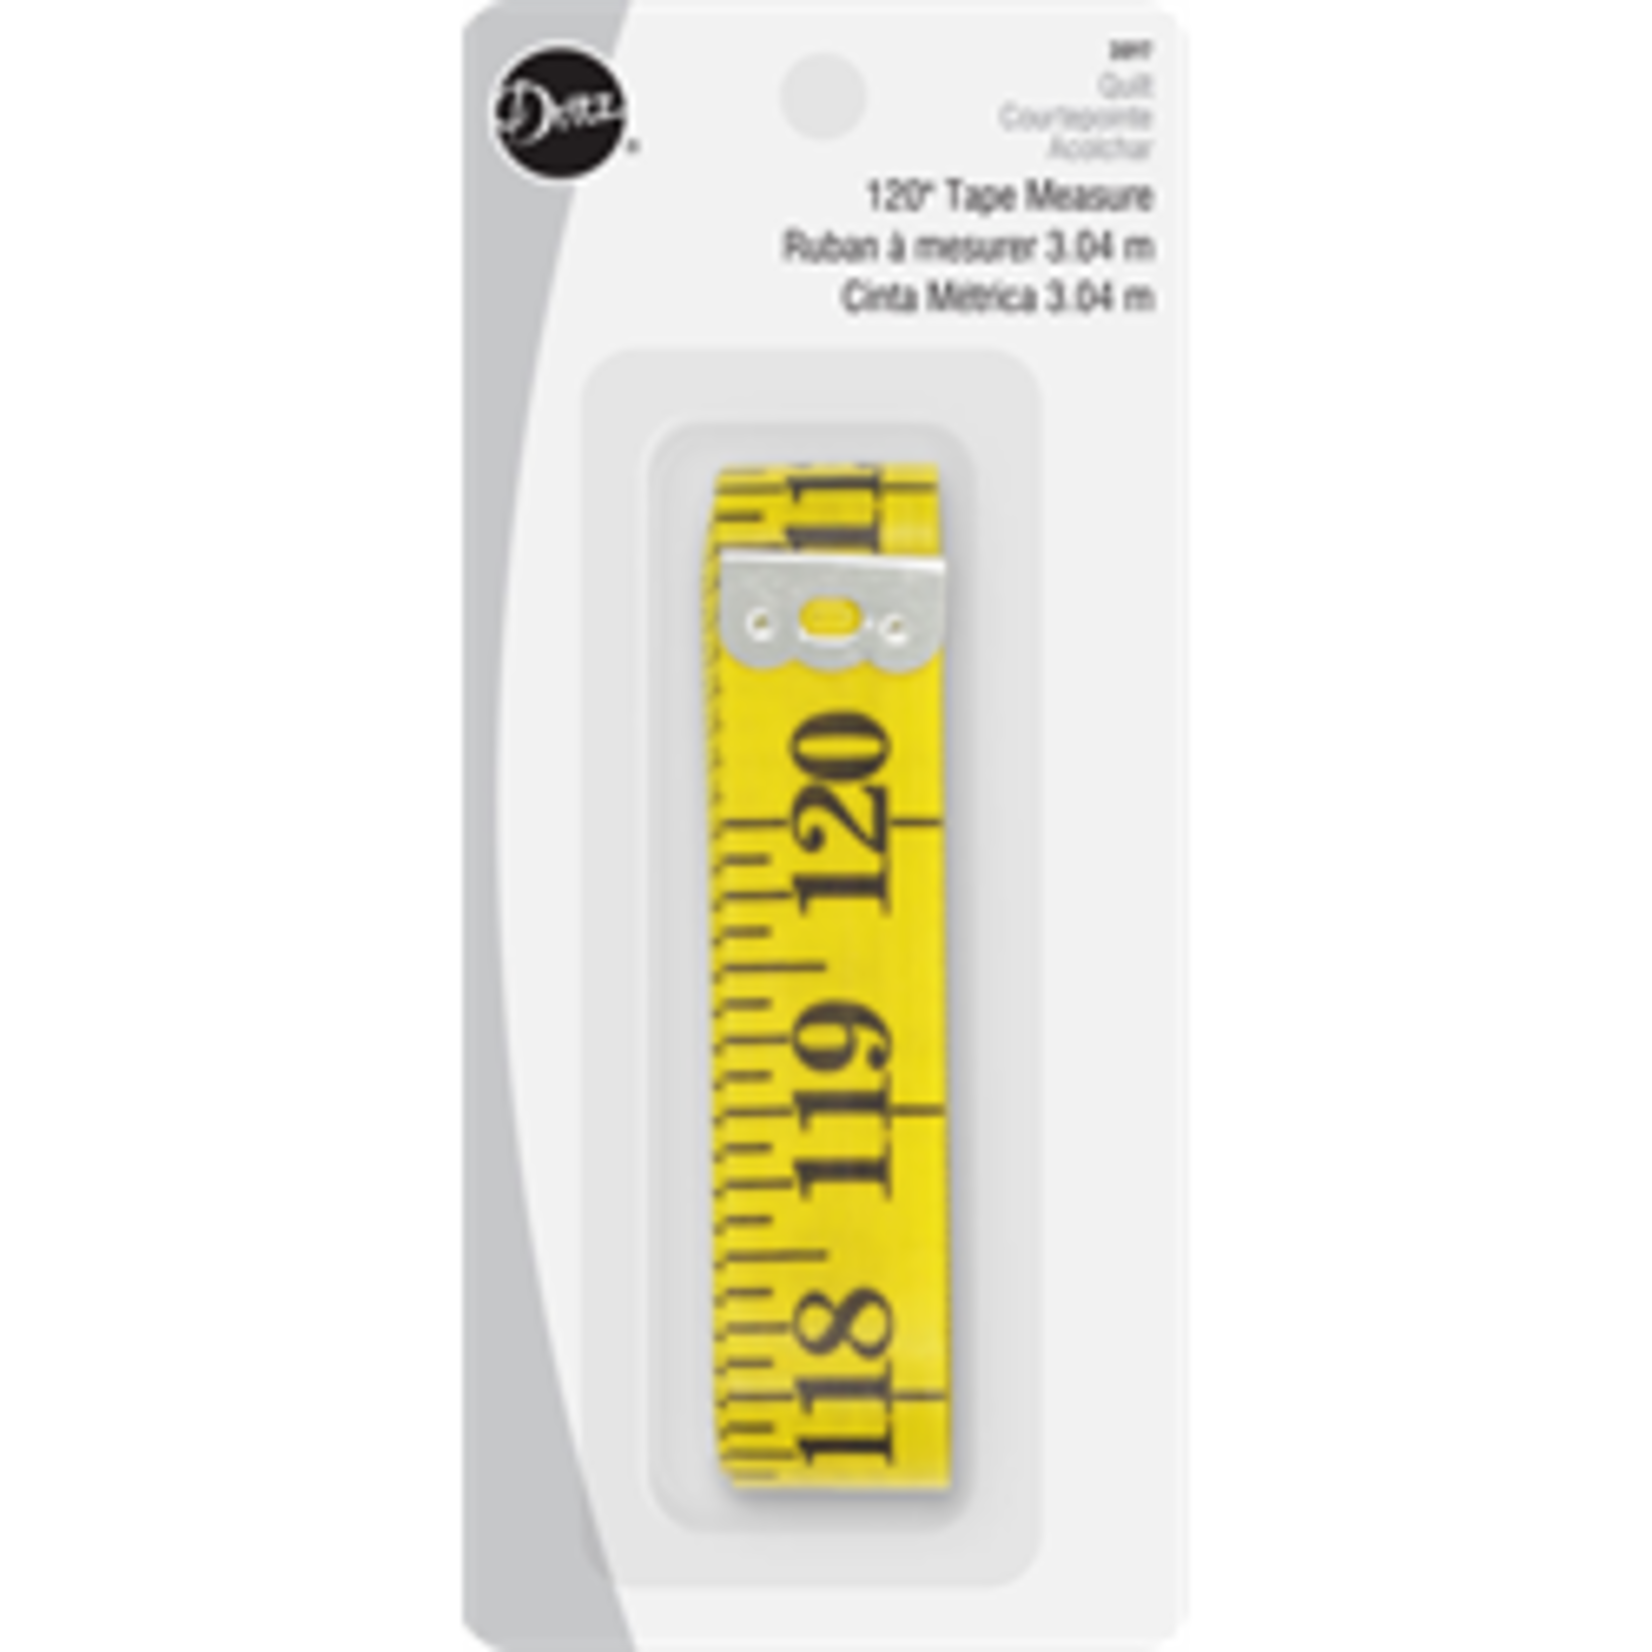 "DRITZ 120"" TAPE MEASURE"